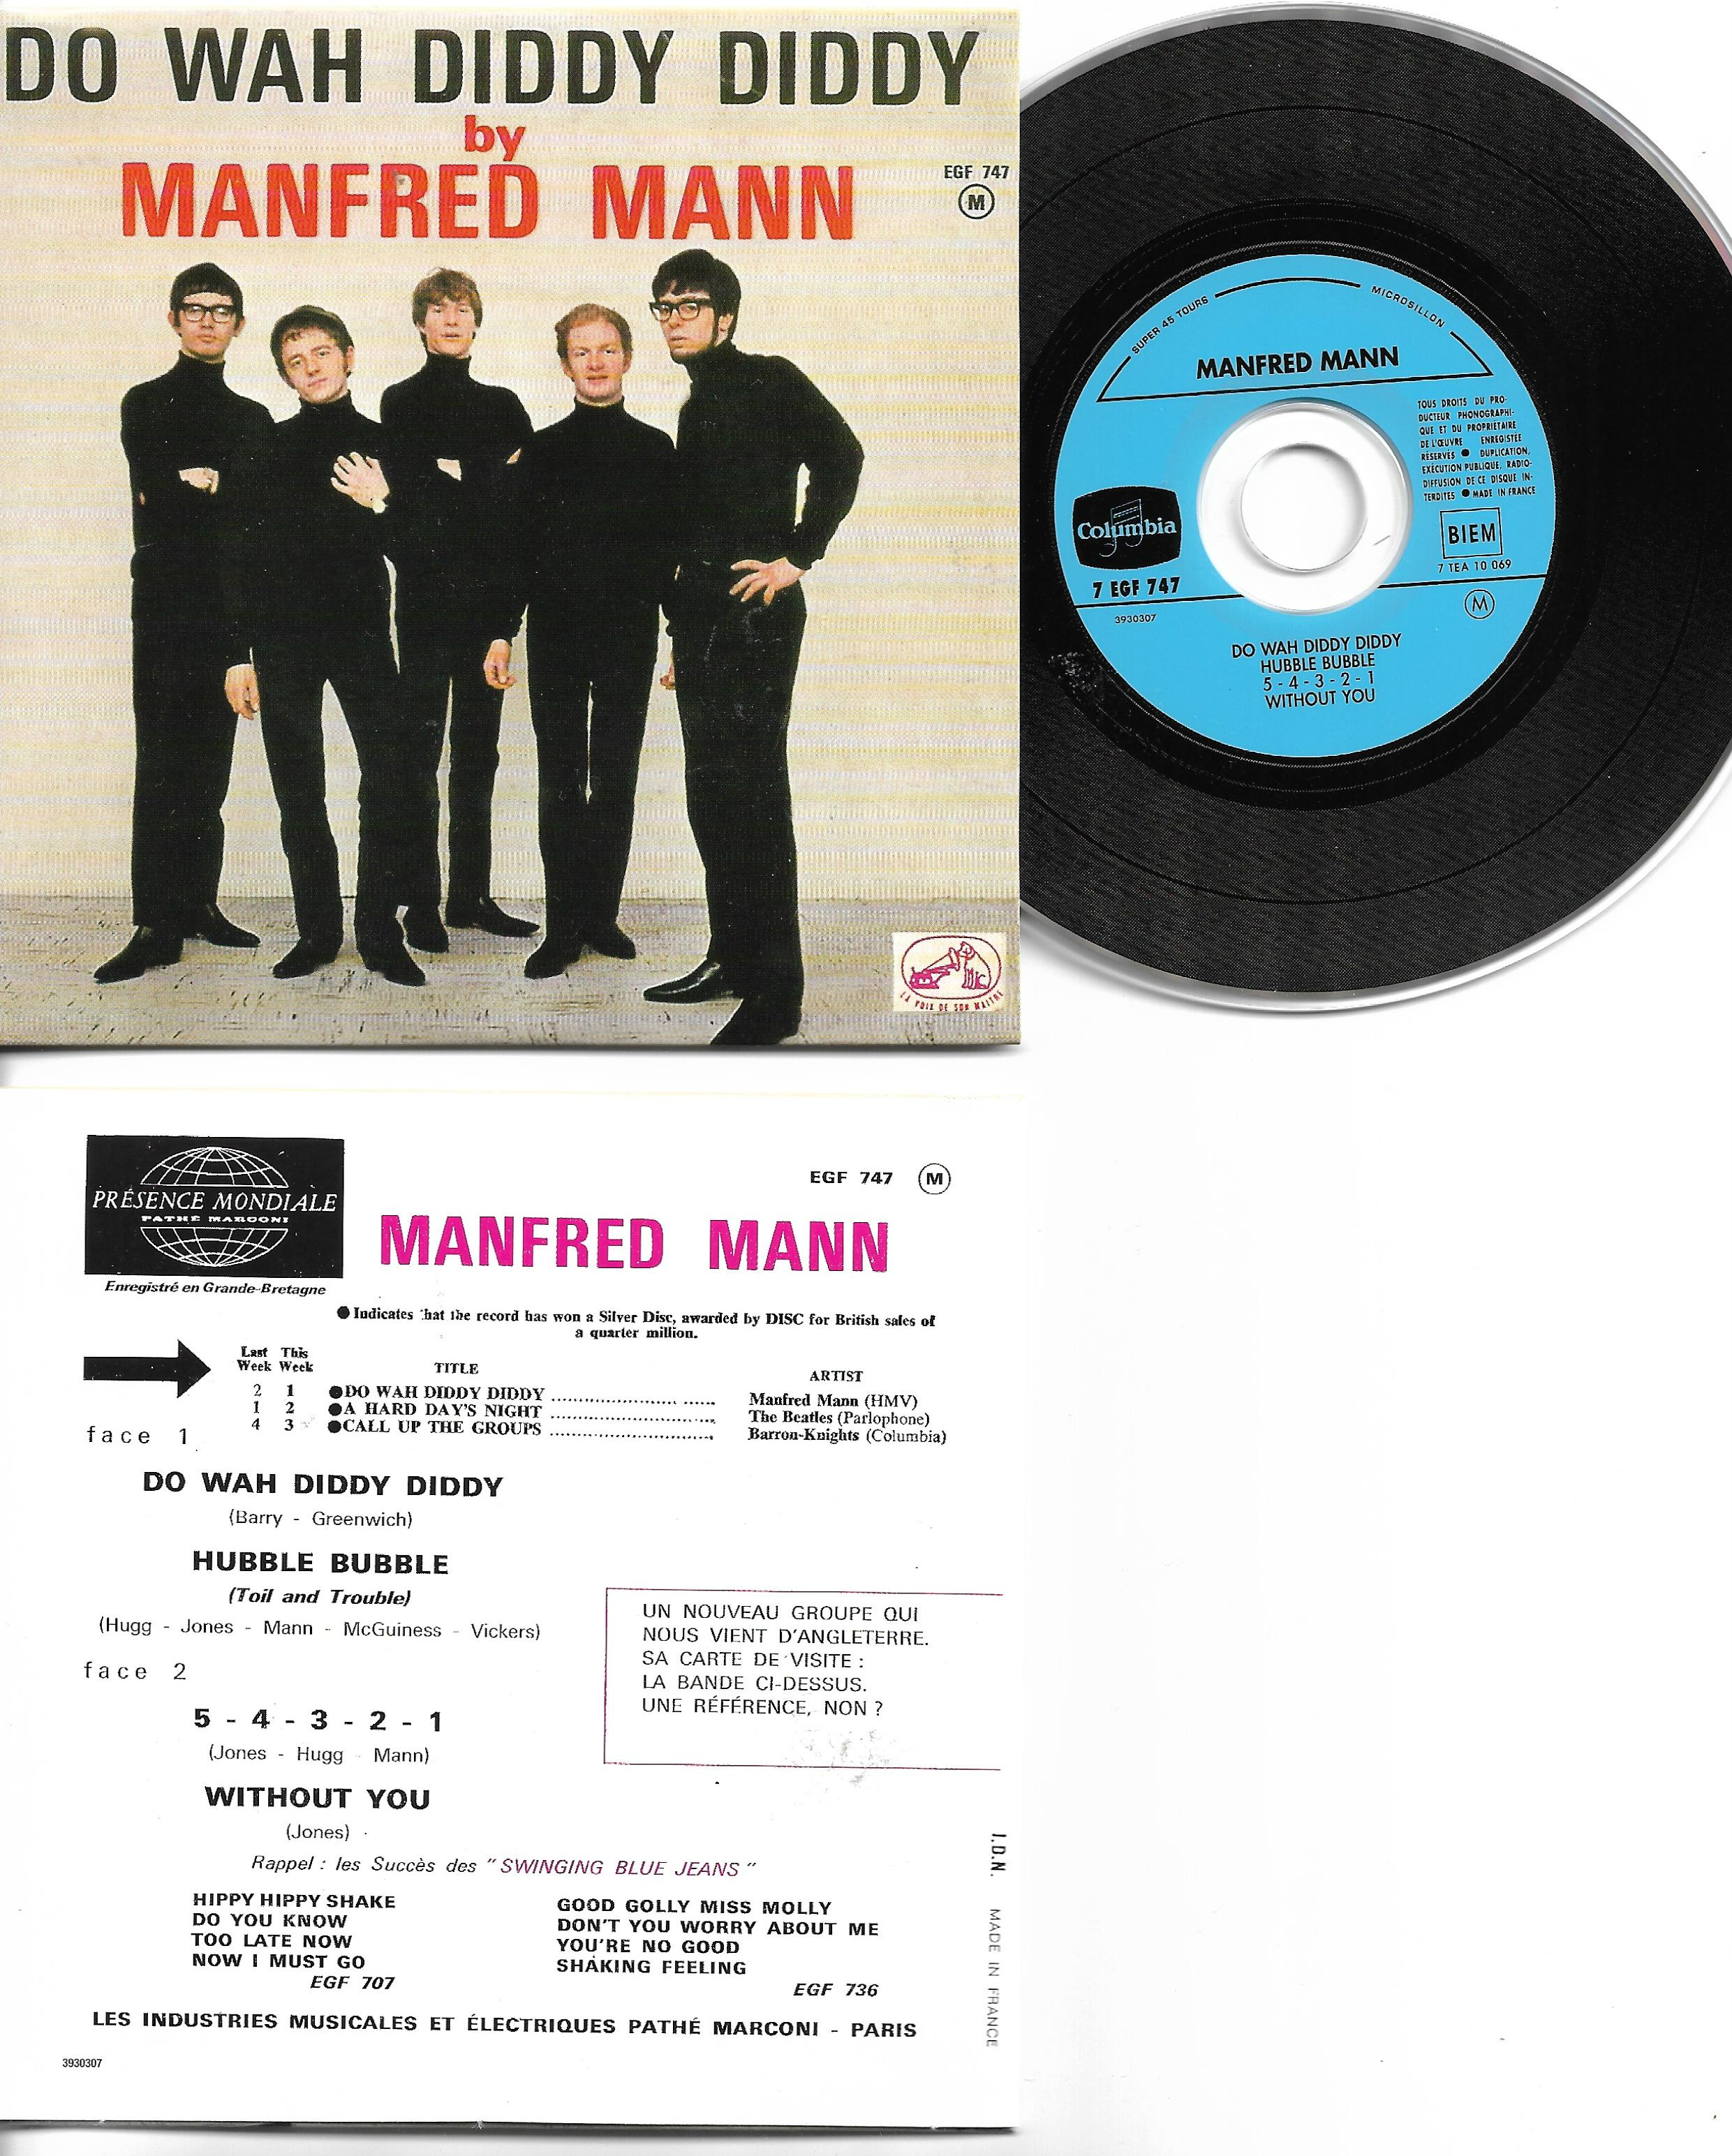 MANFRED MANN - Do wah diddy diddy 4-track CARD SLEEVE - French sleeve - CD single